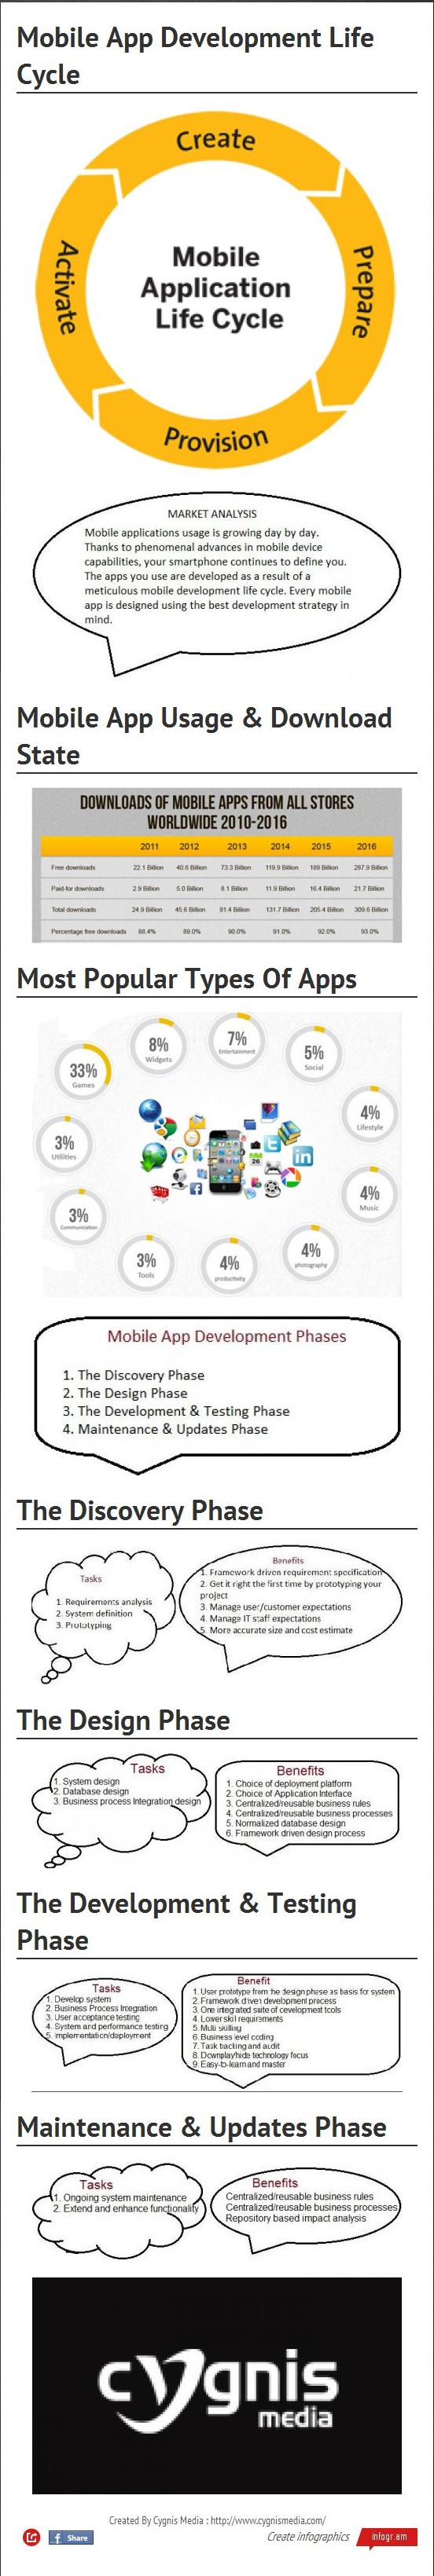 mobile-app-development-life-cycle_52578807397a7